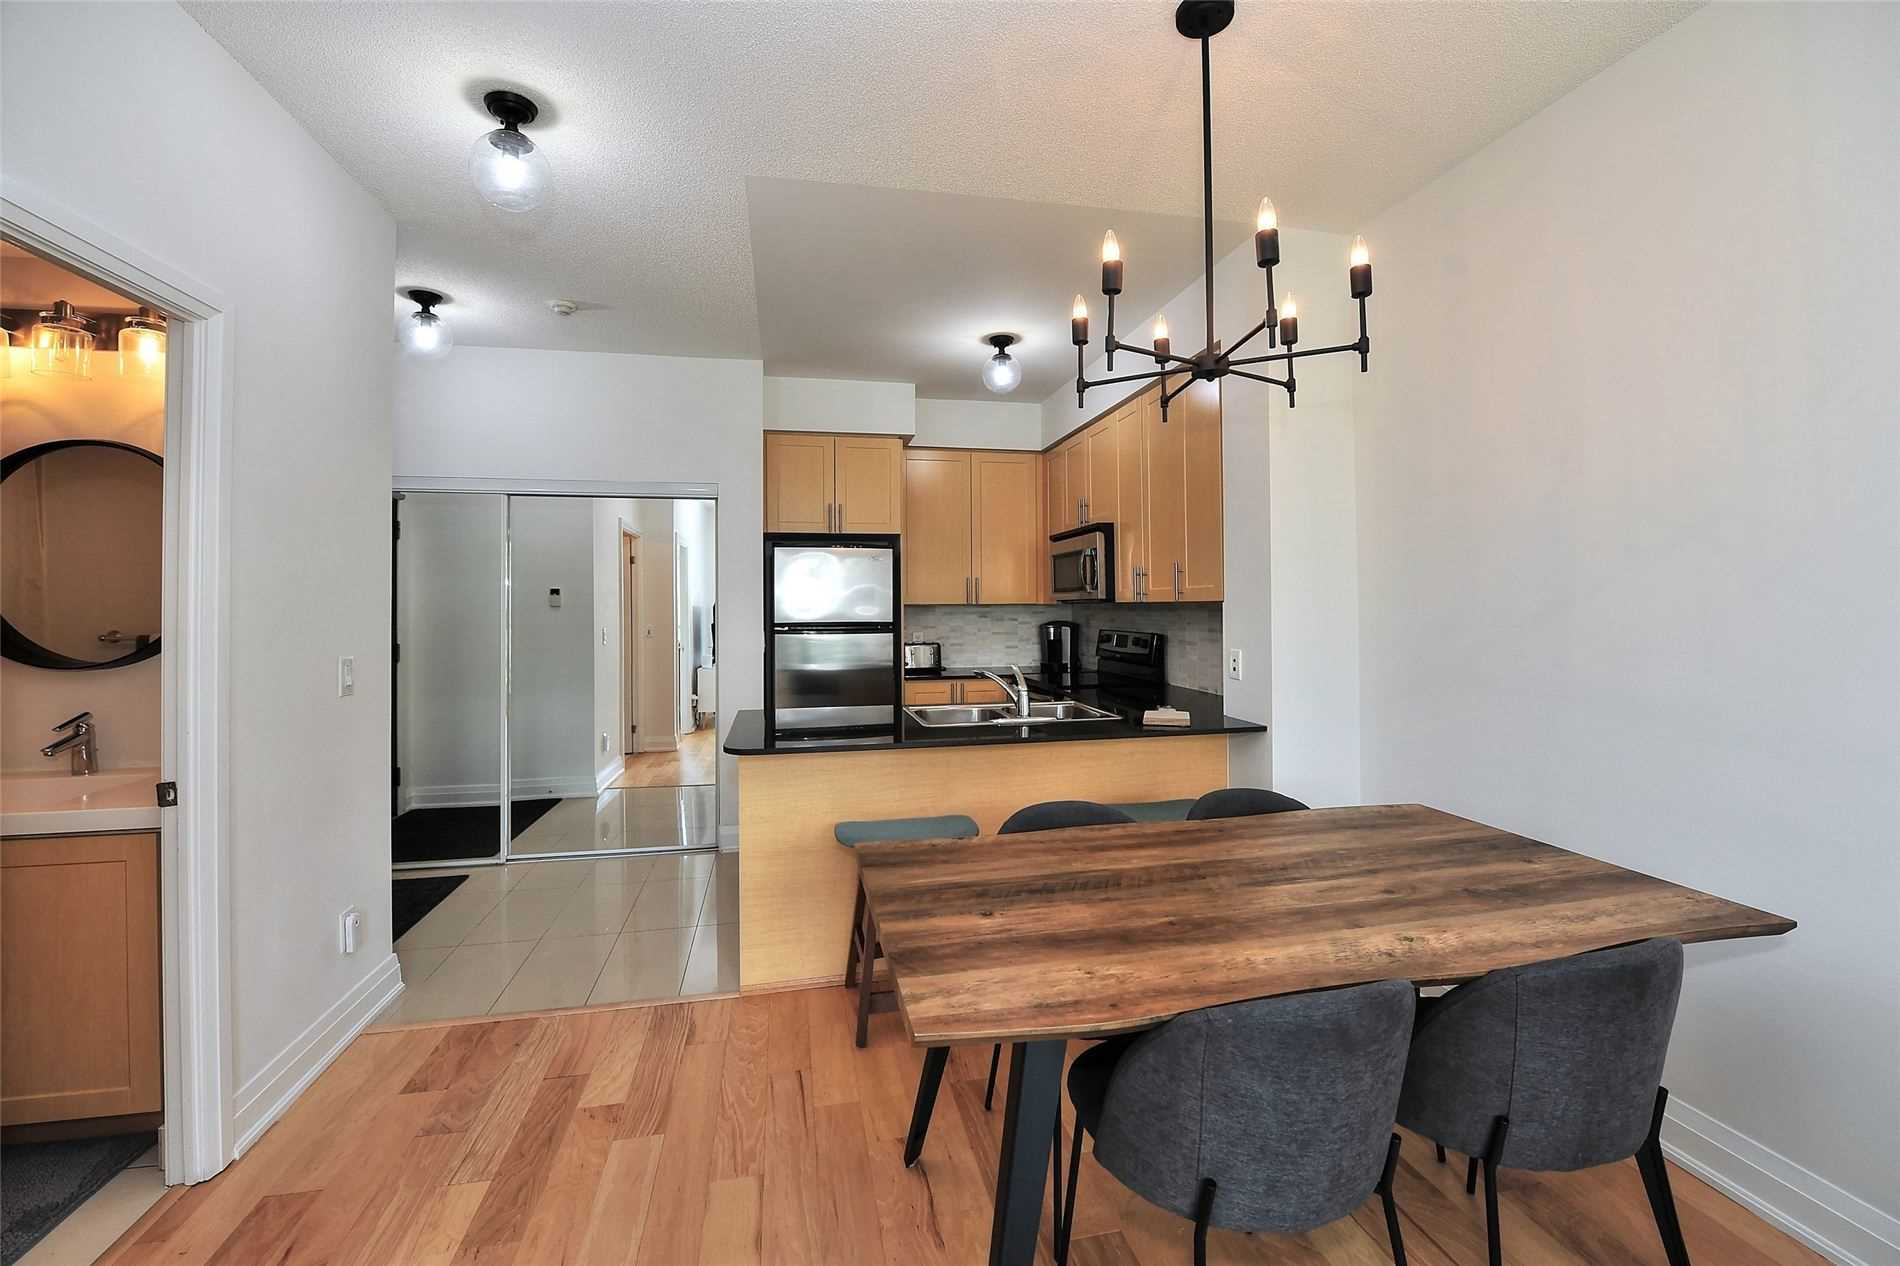 Image 5 of 30 showing inside of 1 Bedroom Condo Apt Apartment for Sale at 30 North Park Rd Unit# 101, Vaughan L4J0G6